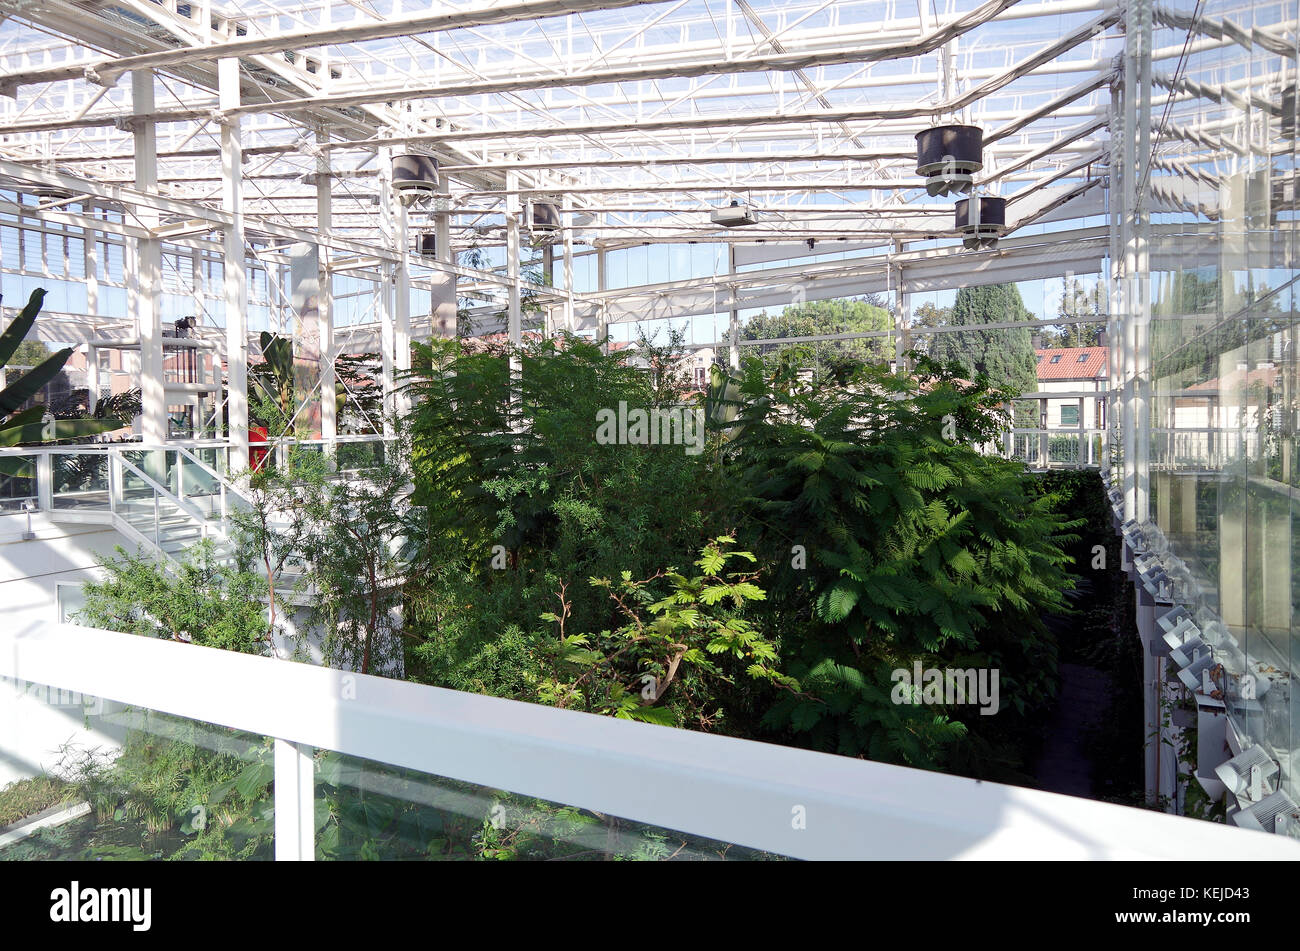 Orto Botanico di Padova, Padua Botanical garden, the world's oldest, in Padu, Italy, Interior of Sub-humid tropical - Stock Image